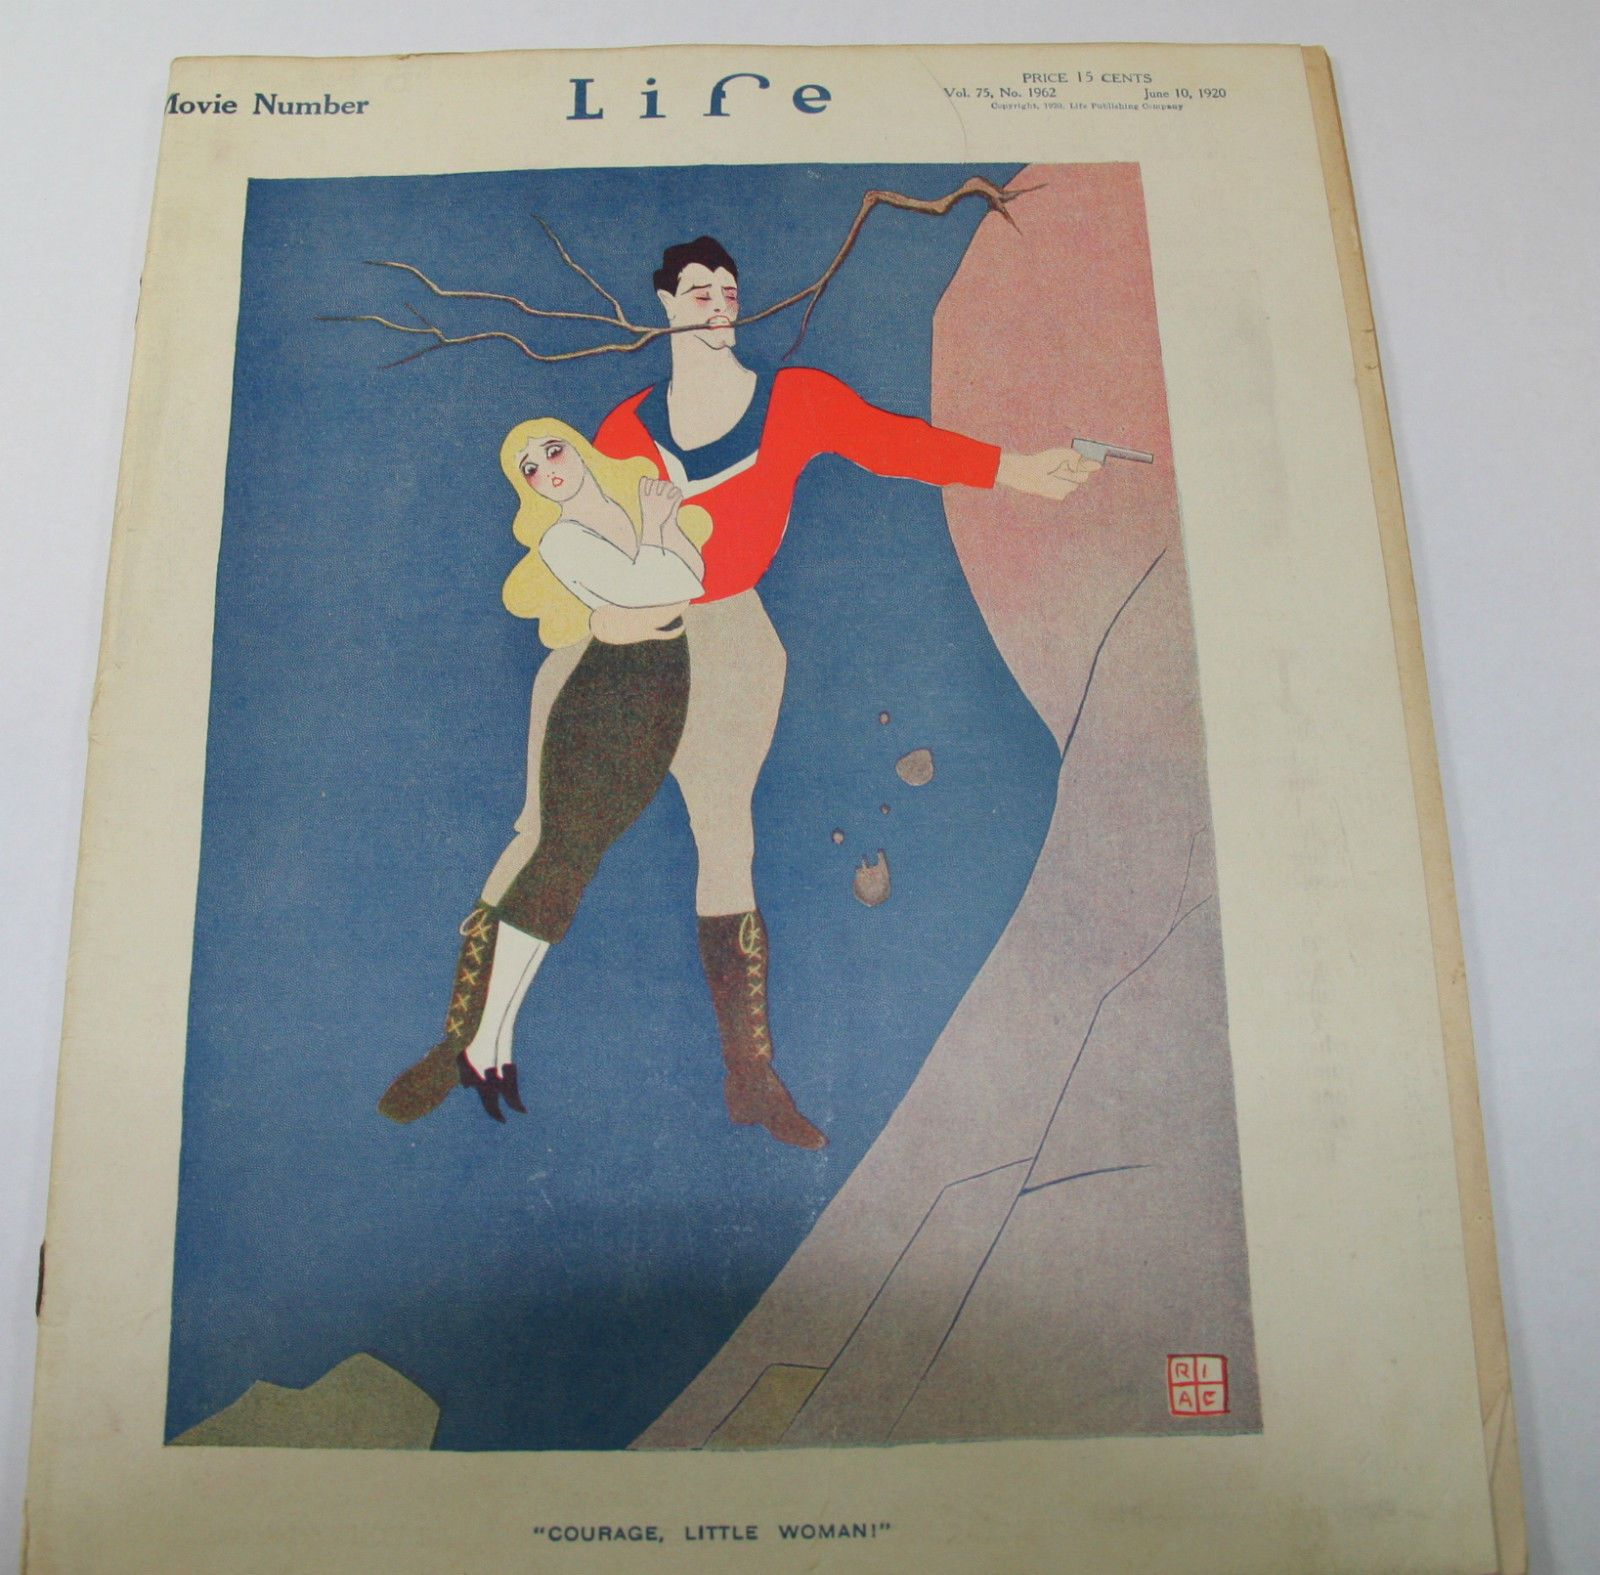 Life Magazine from 1920s Featuring Comical Couple